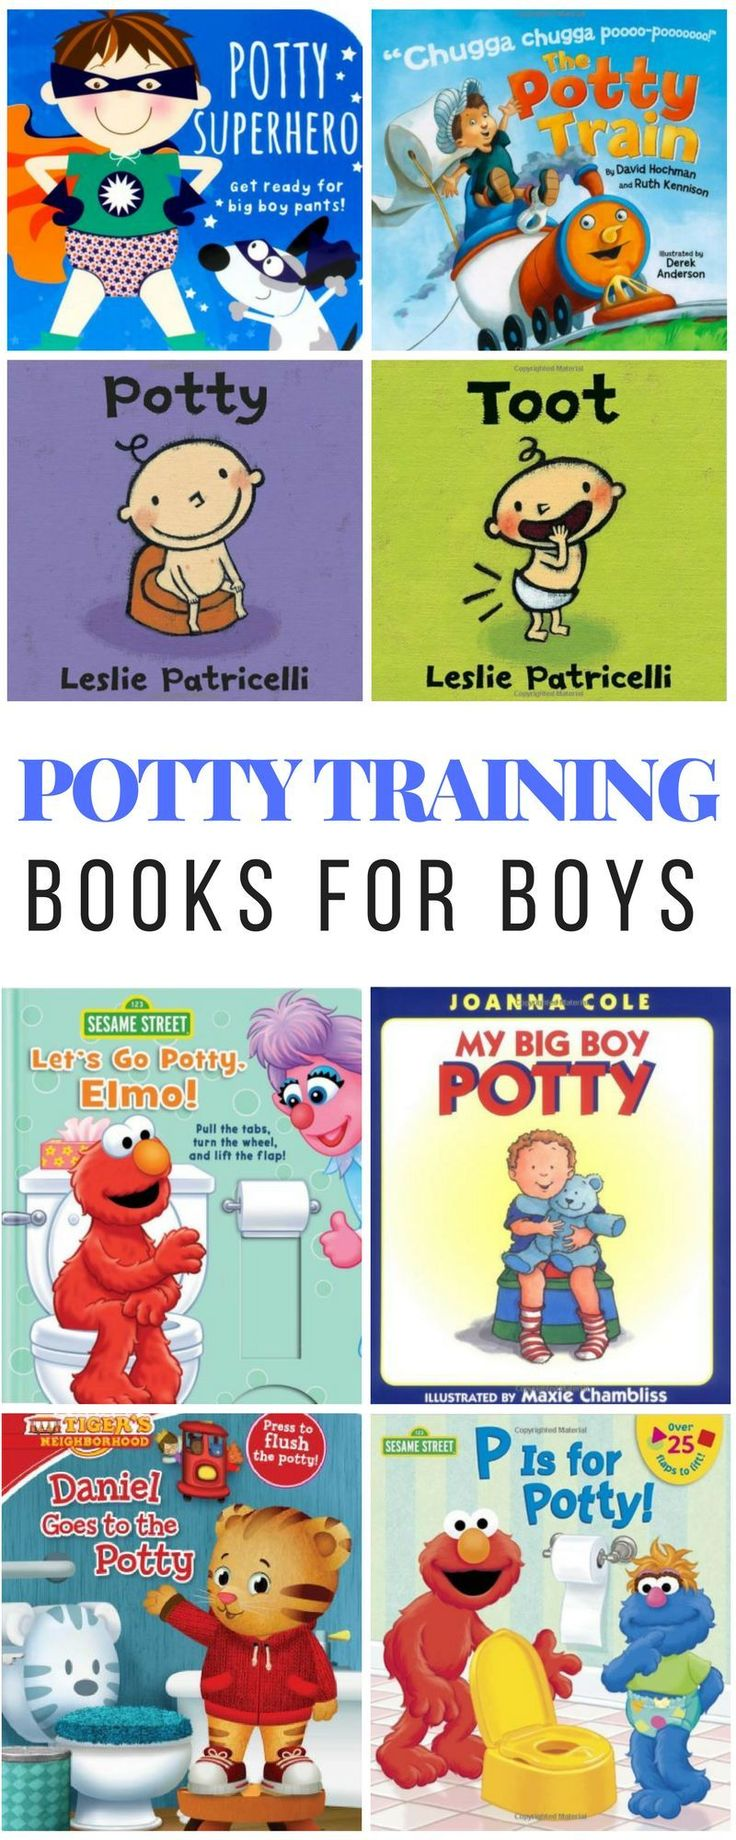 Potty training books for boys / how to potty train a boy in 3 days / potty training tips for girls / potty training boys age 2 / what age to start potty training / potty training boys age 3 / how to potty train a toddler / potty training problems / potty training schedule More info: |> pottytrainings.blogspot.com <|